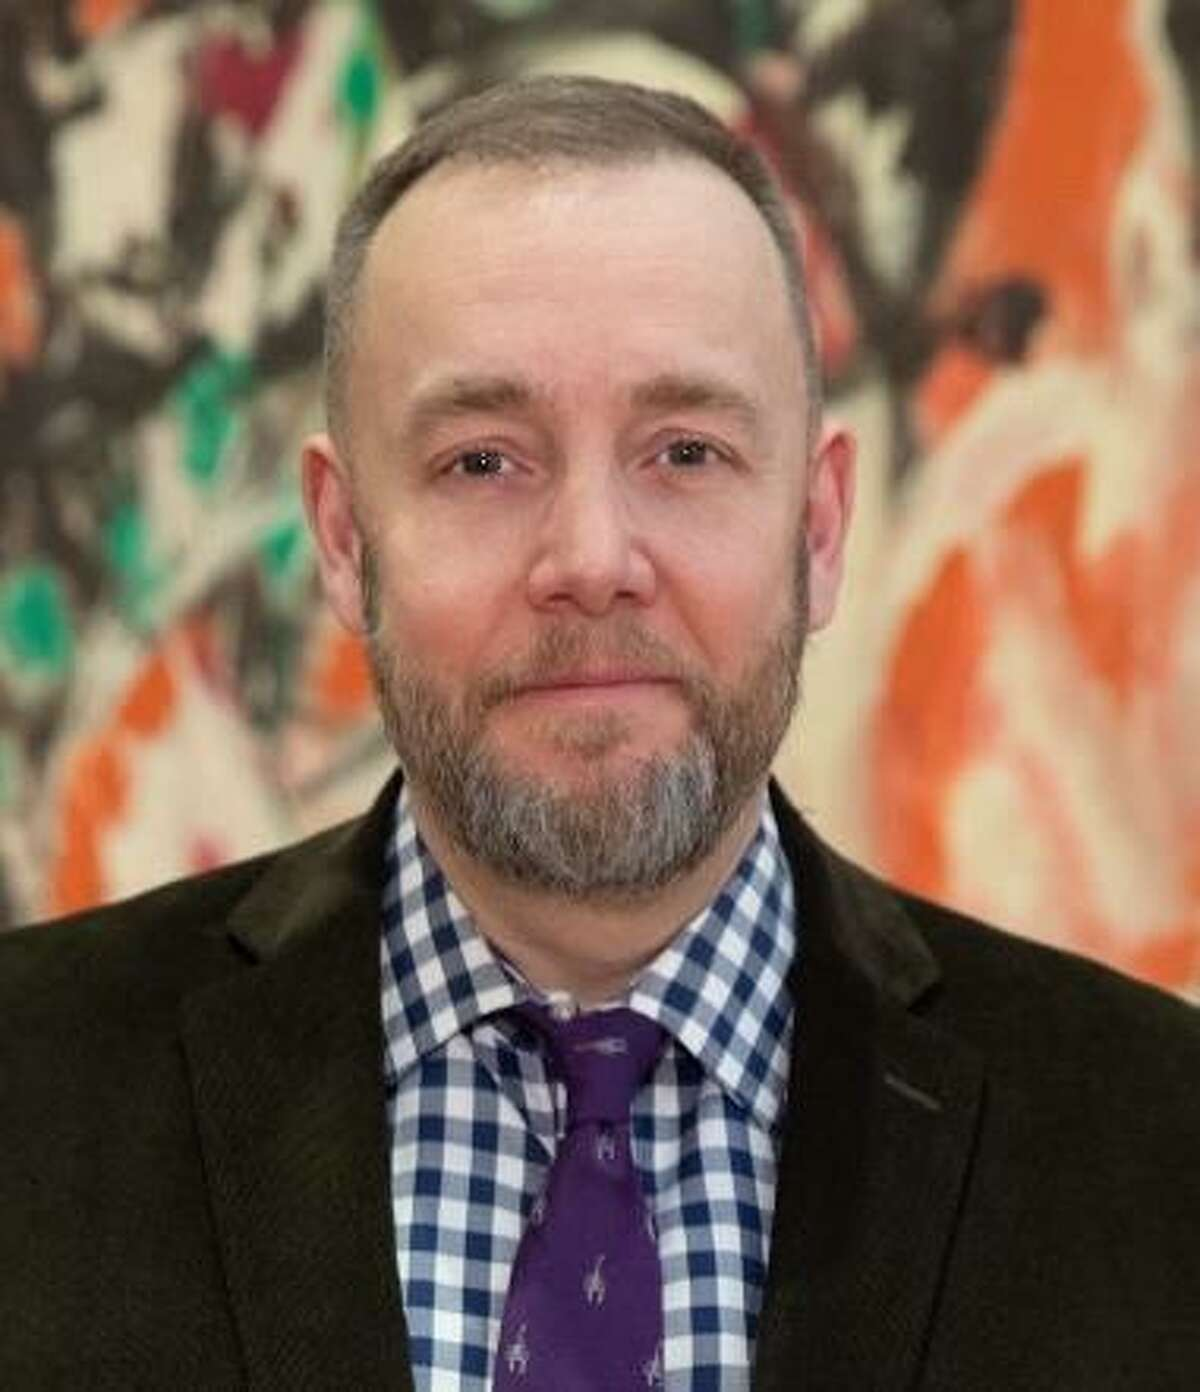 The Museum of Fine Arts, Houston has hired Per Knutas from the Cleveland Museum of Art as its next head of conservation. He begins the job in July.